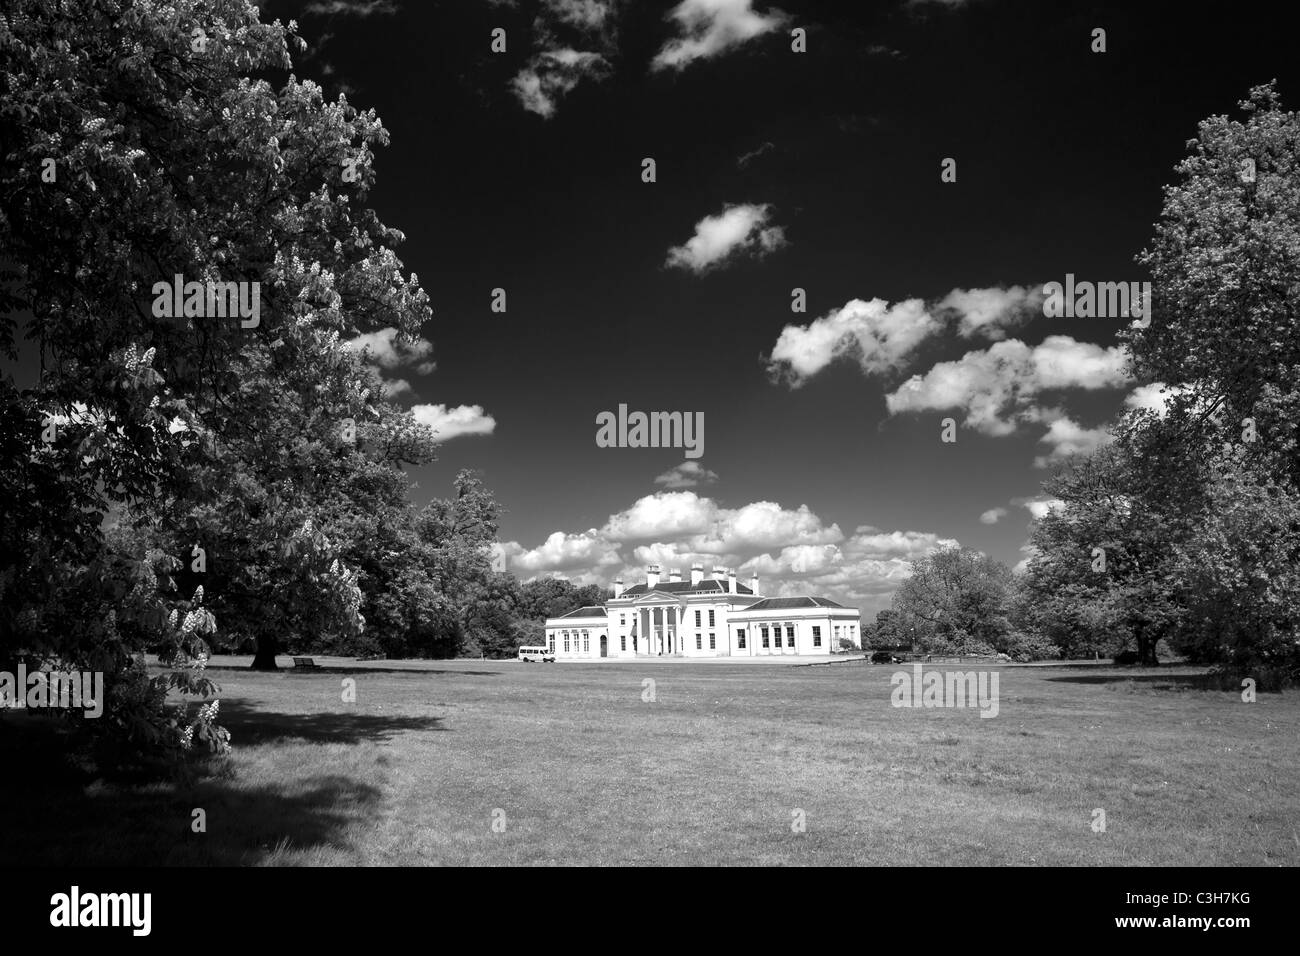 Hylands House, Chelmsford, Essex, UK - Stock Image